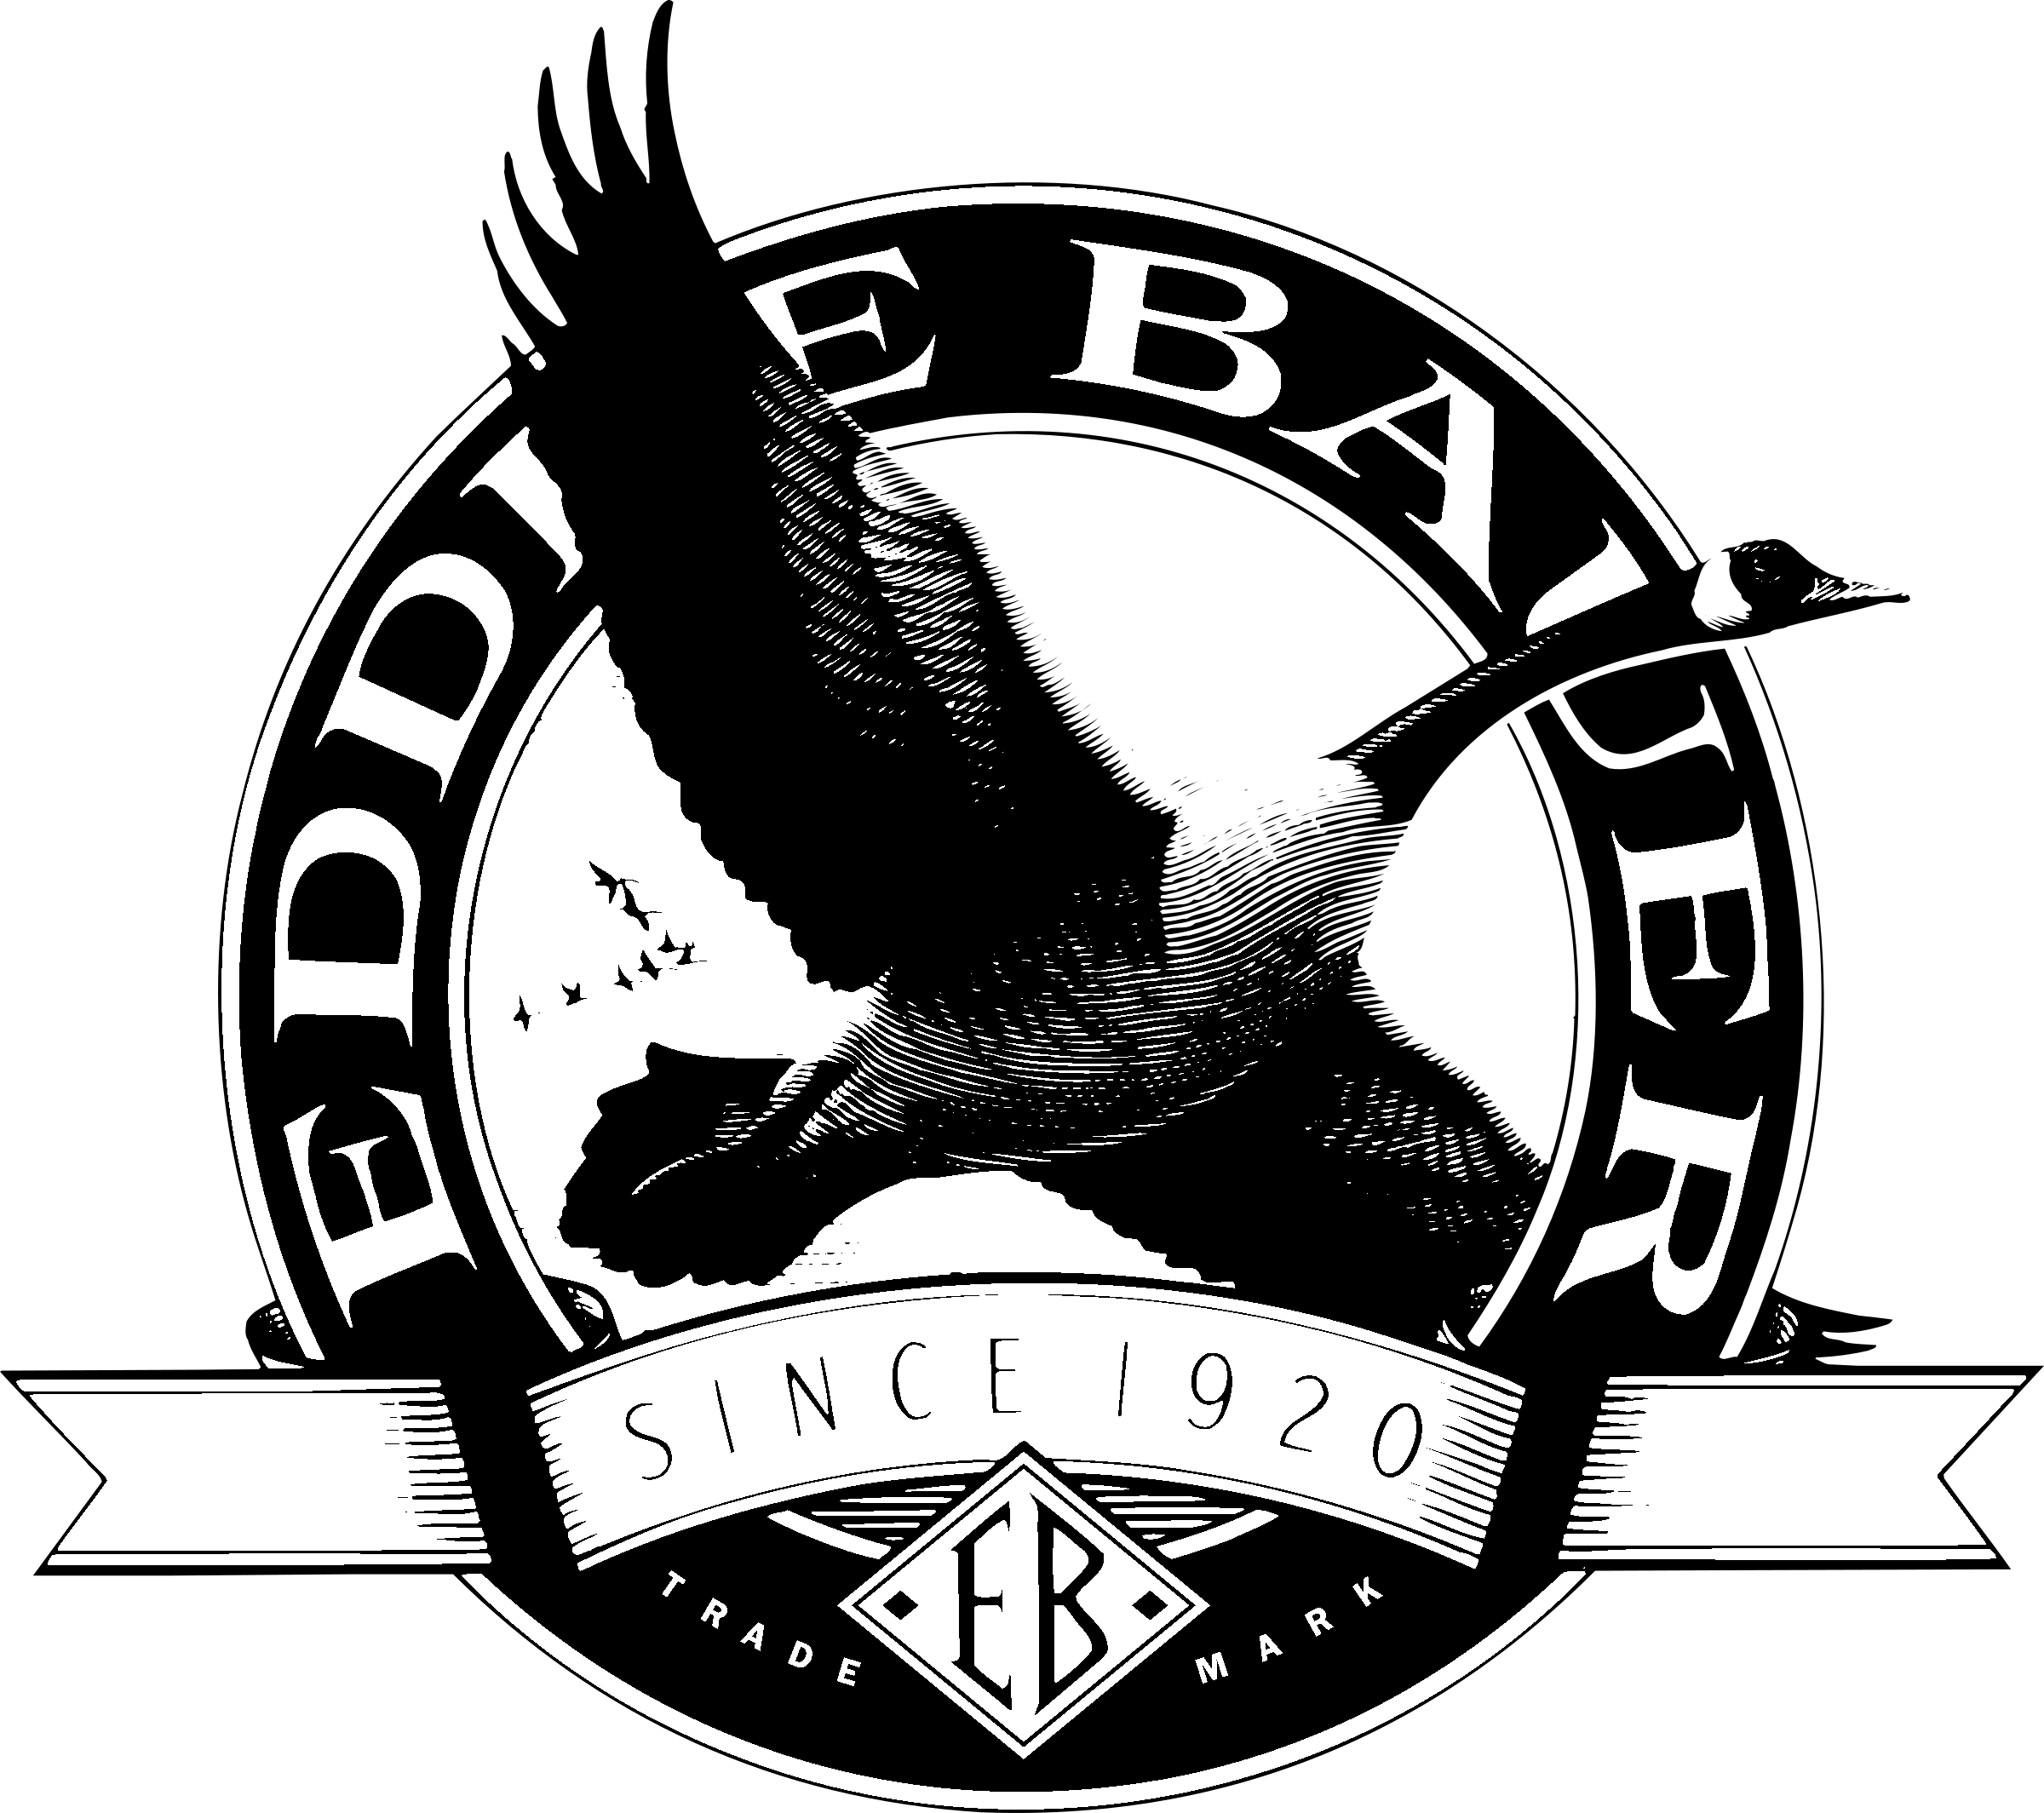 Eddie Bauer 2 Logo PNG Transparent & SVG Vector.